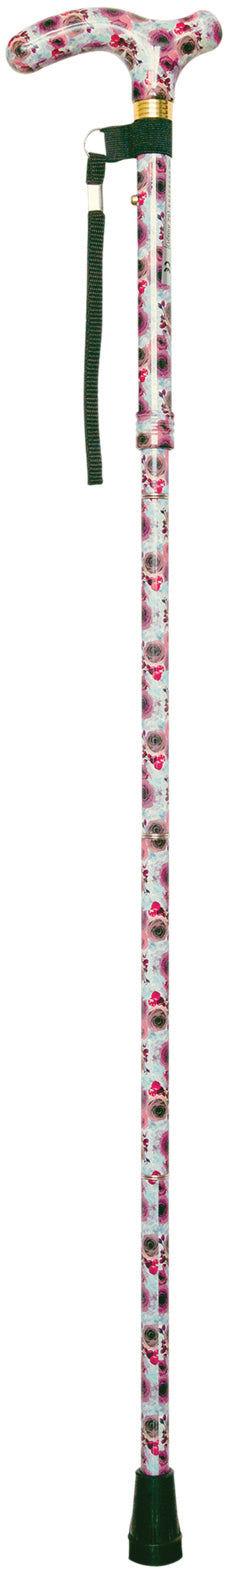 Rose patterned adjustable walking stick with patterned handle, black ferrule and loop